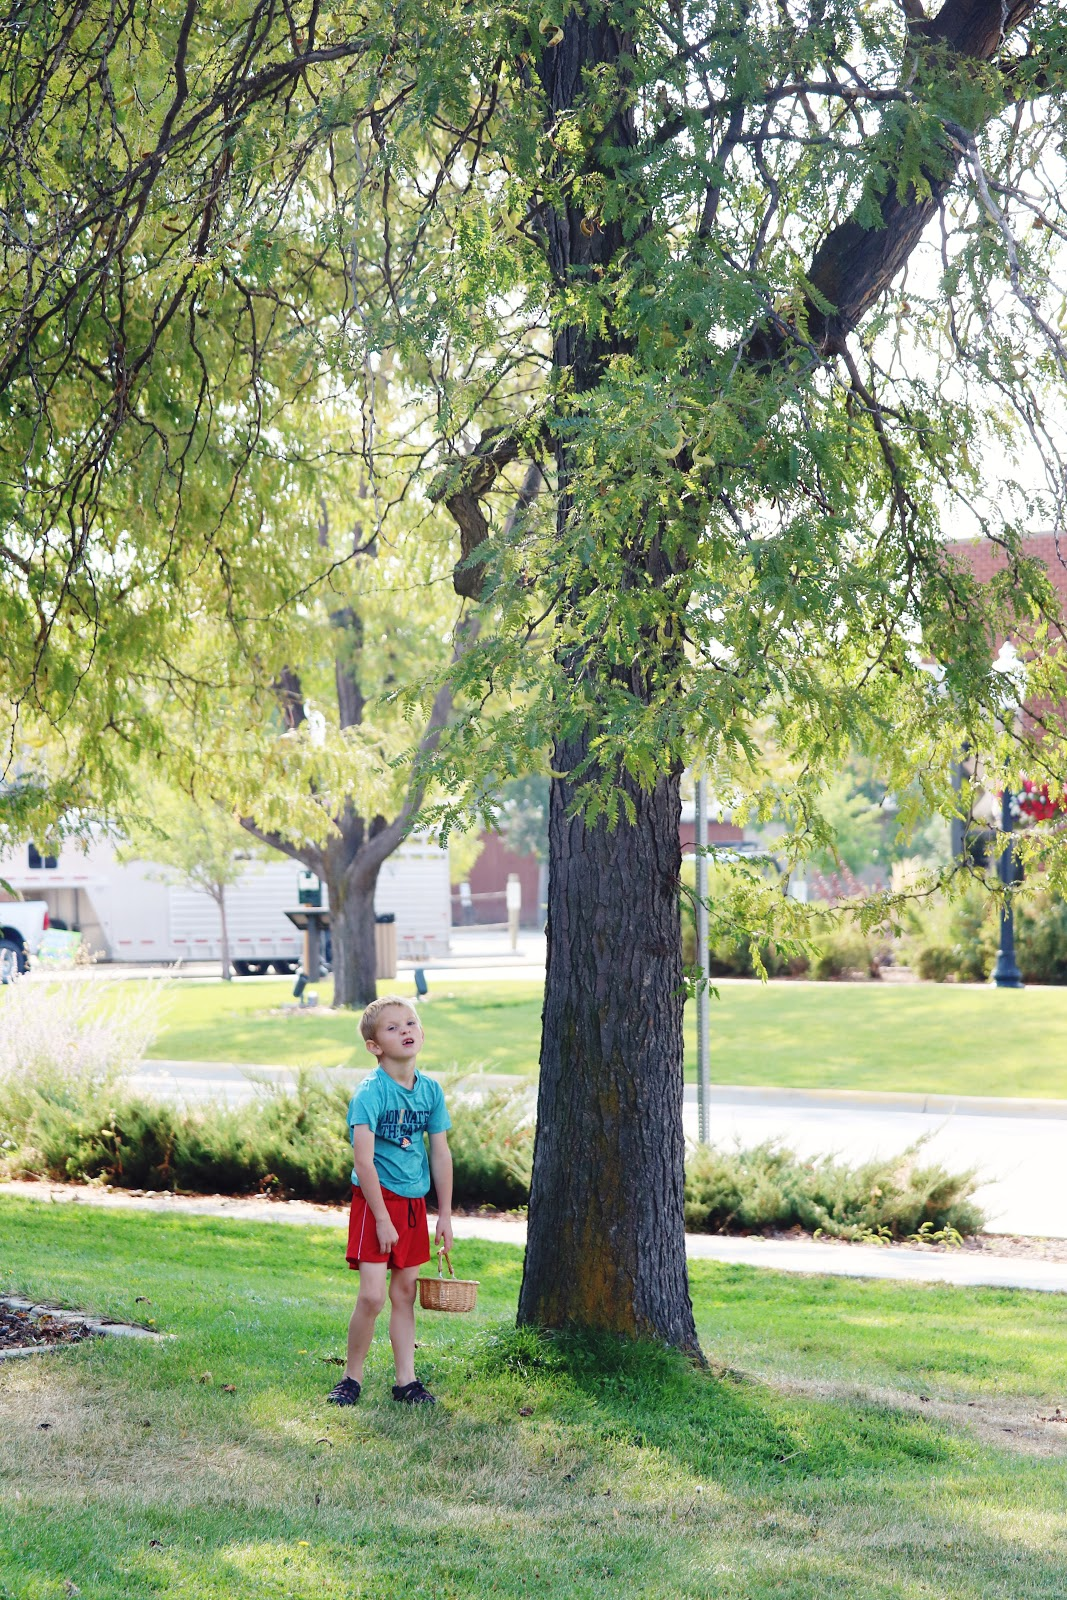 Exploring Nature With Children Diy Nature Explorer Packs: A Walk Around The Neighborhood To Collect Seeds